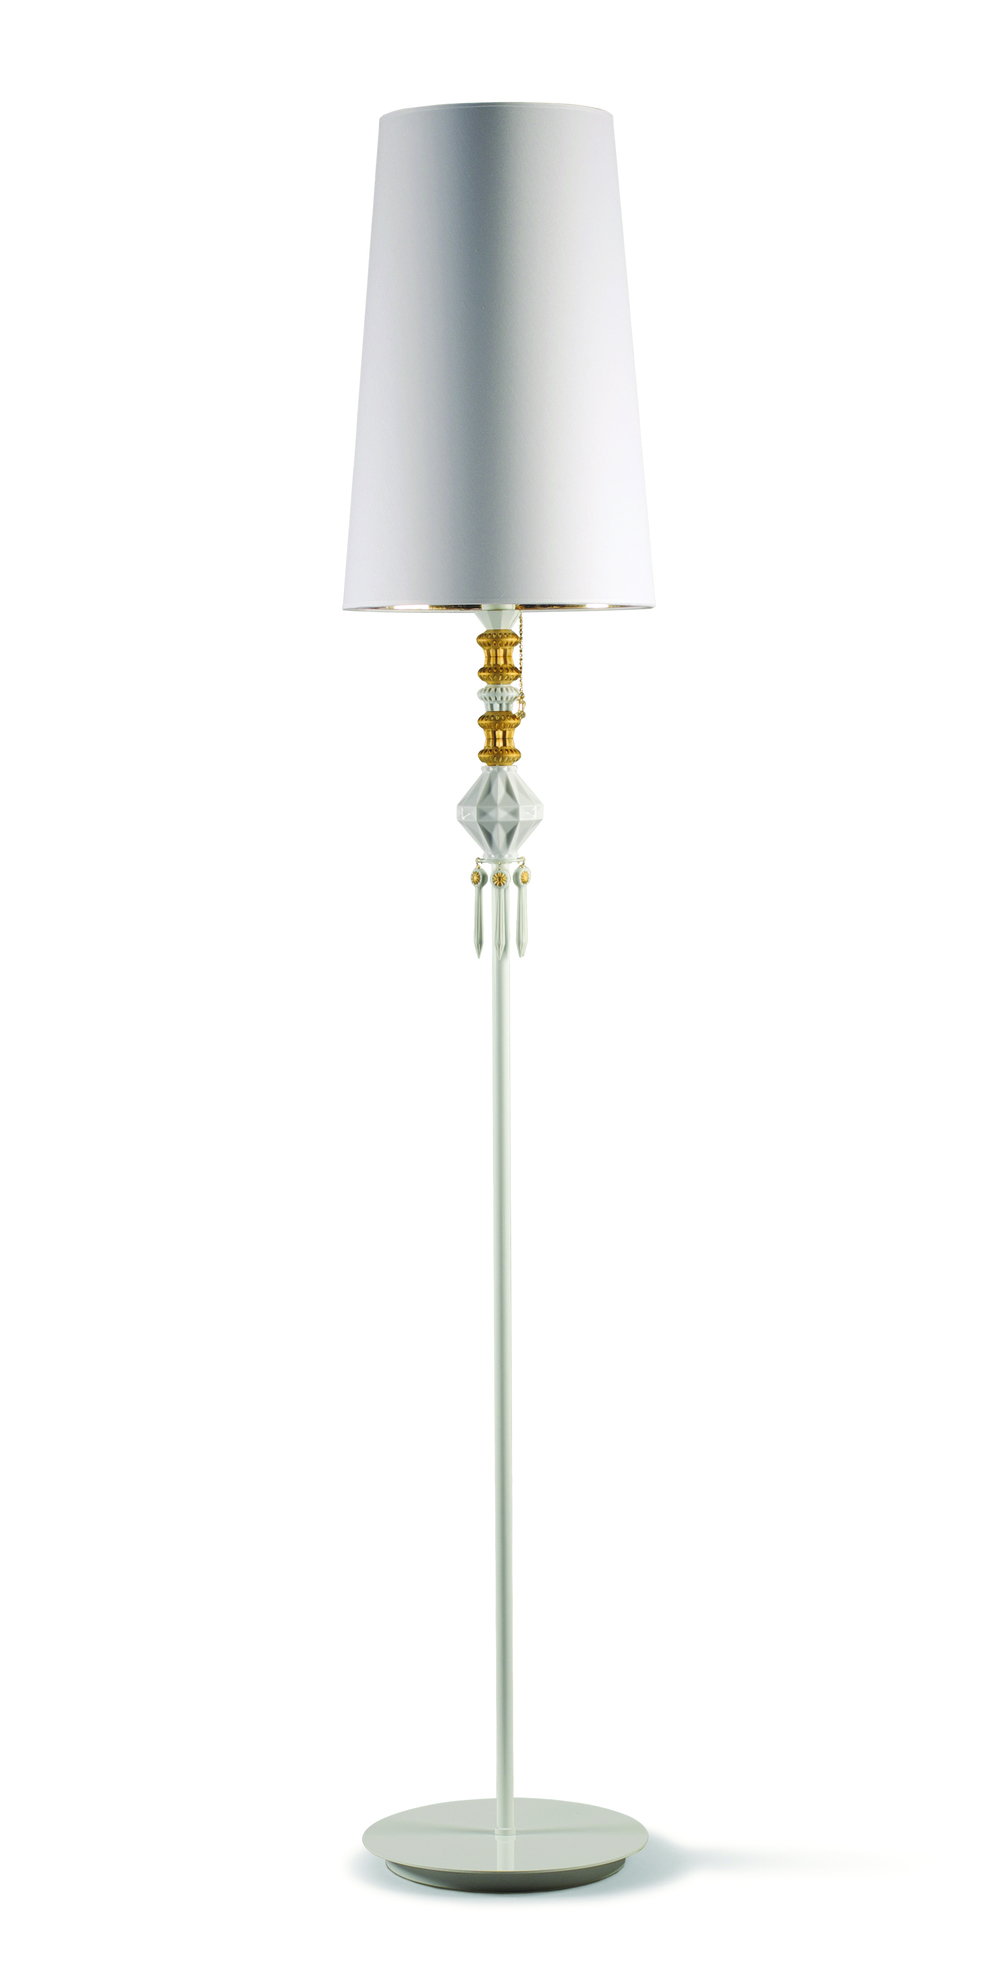 Lladró Floor Lamp $2,045 A necklace was no doubt the inspiration for this witty floor lamp that features a string of gold and white porcelain baubles. At lladro.com